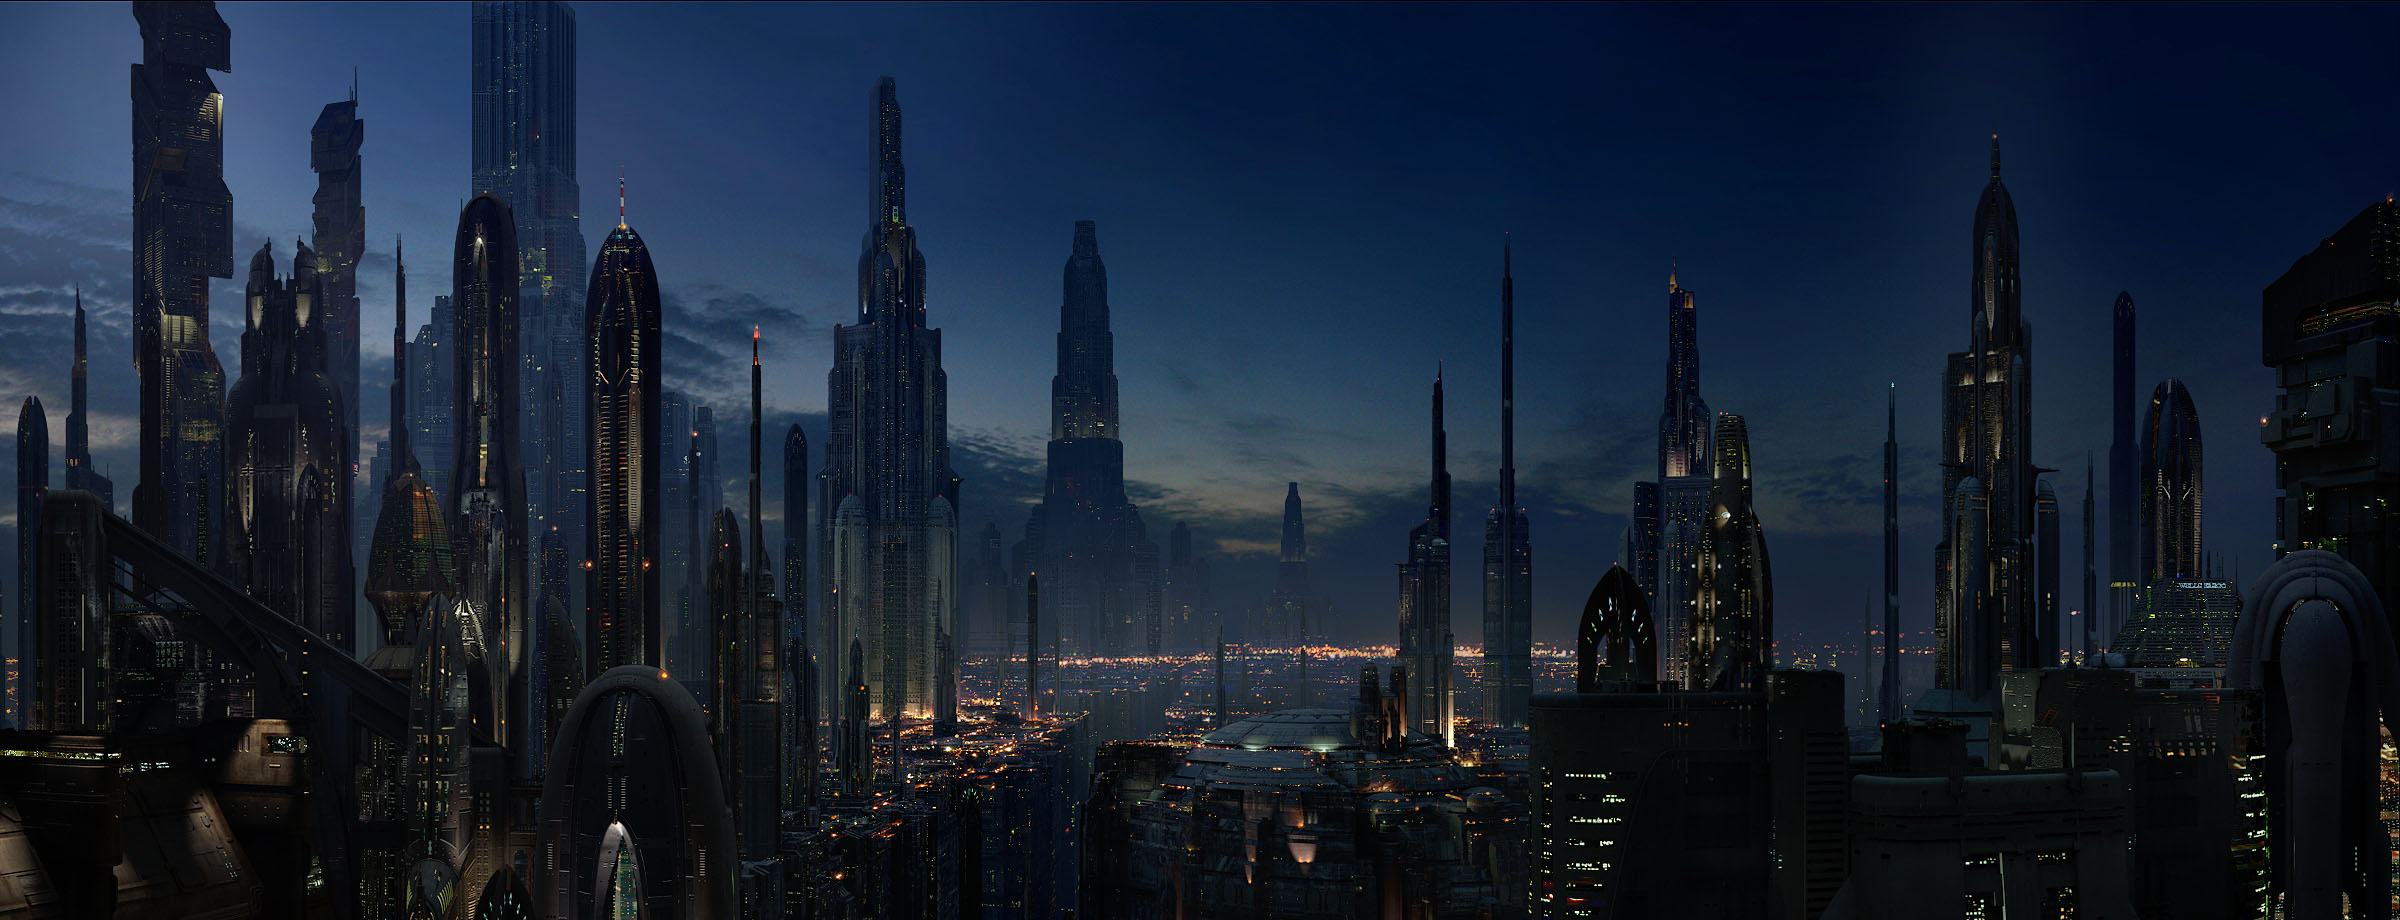 Coruscant_at_night.jpg